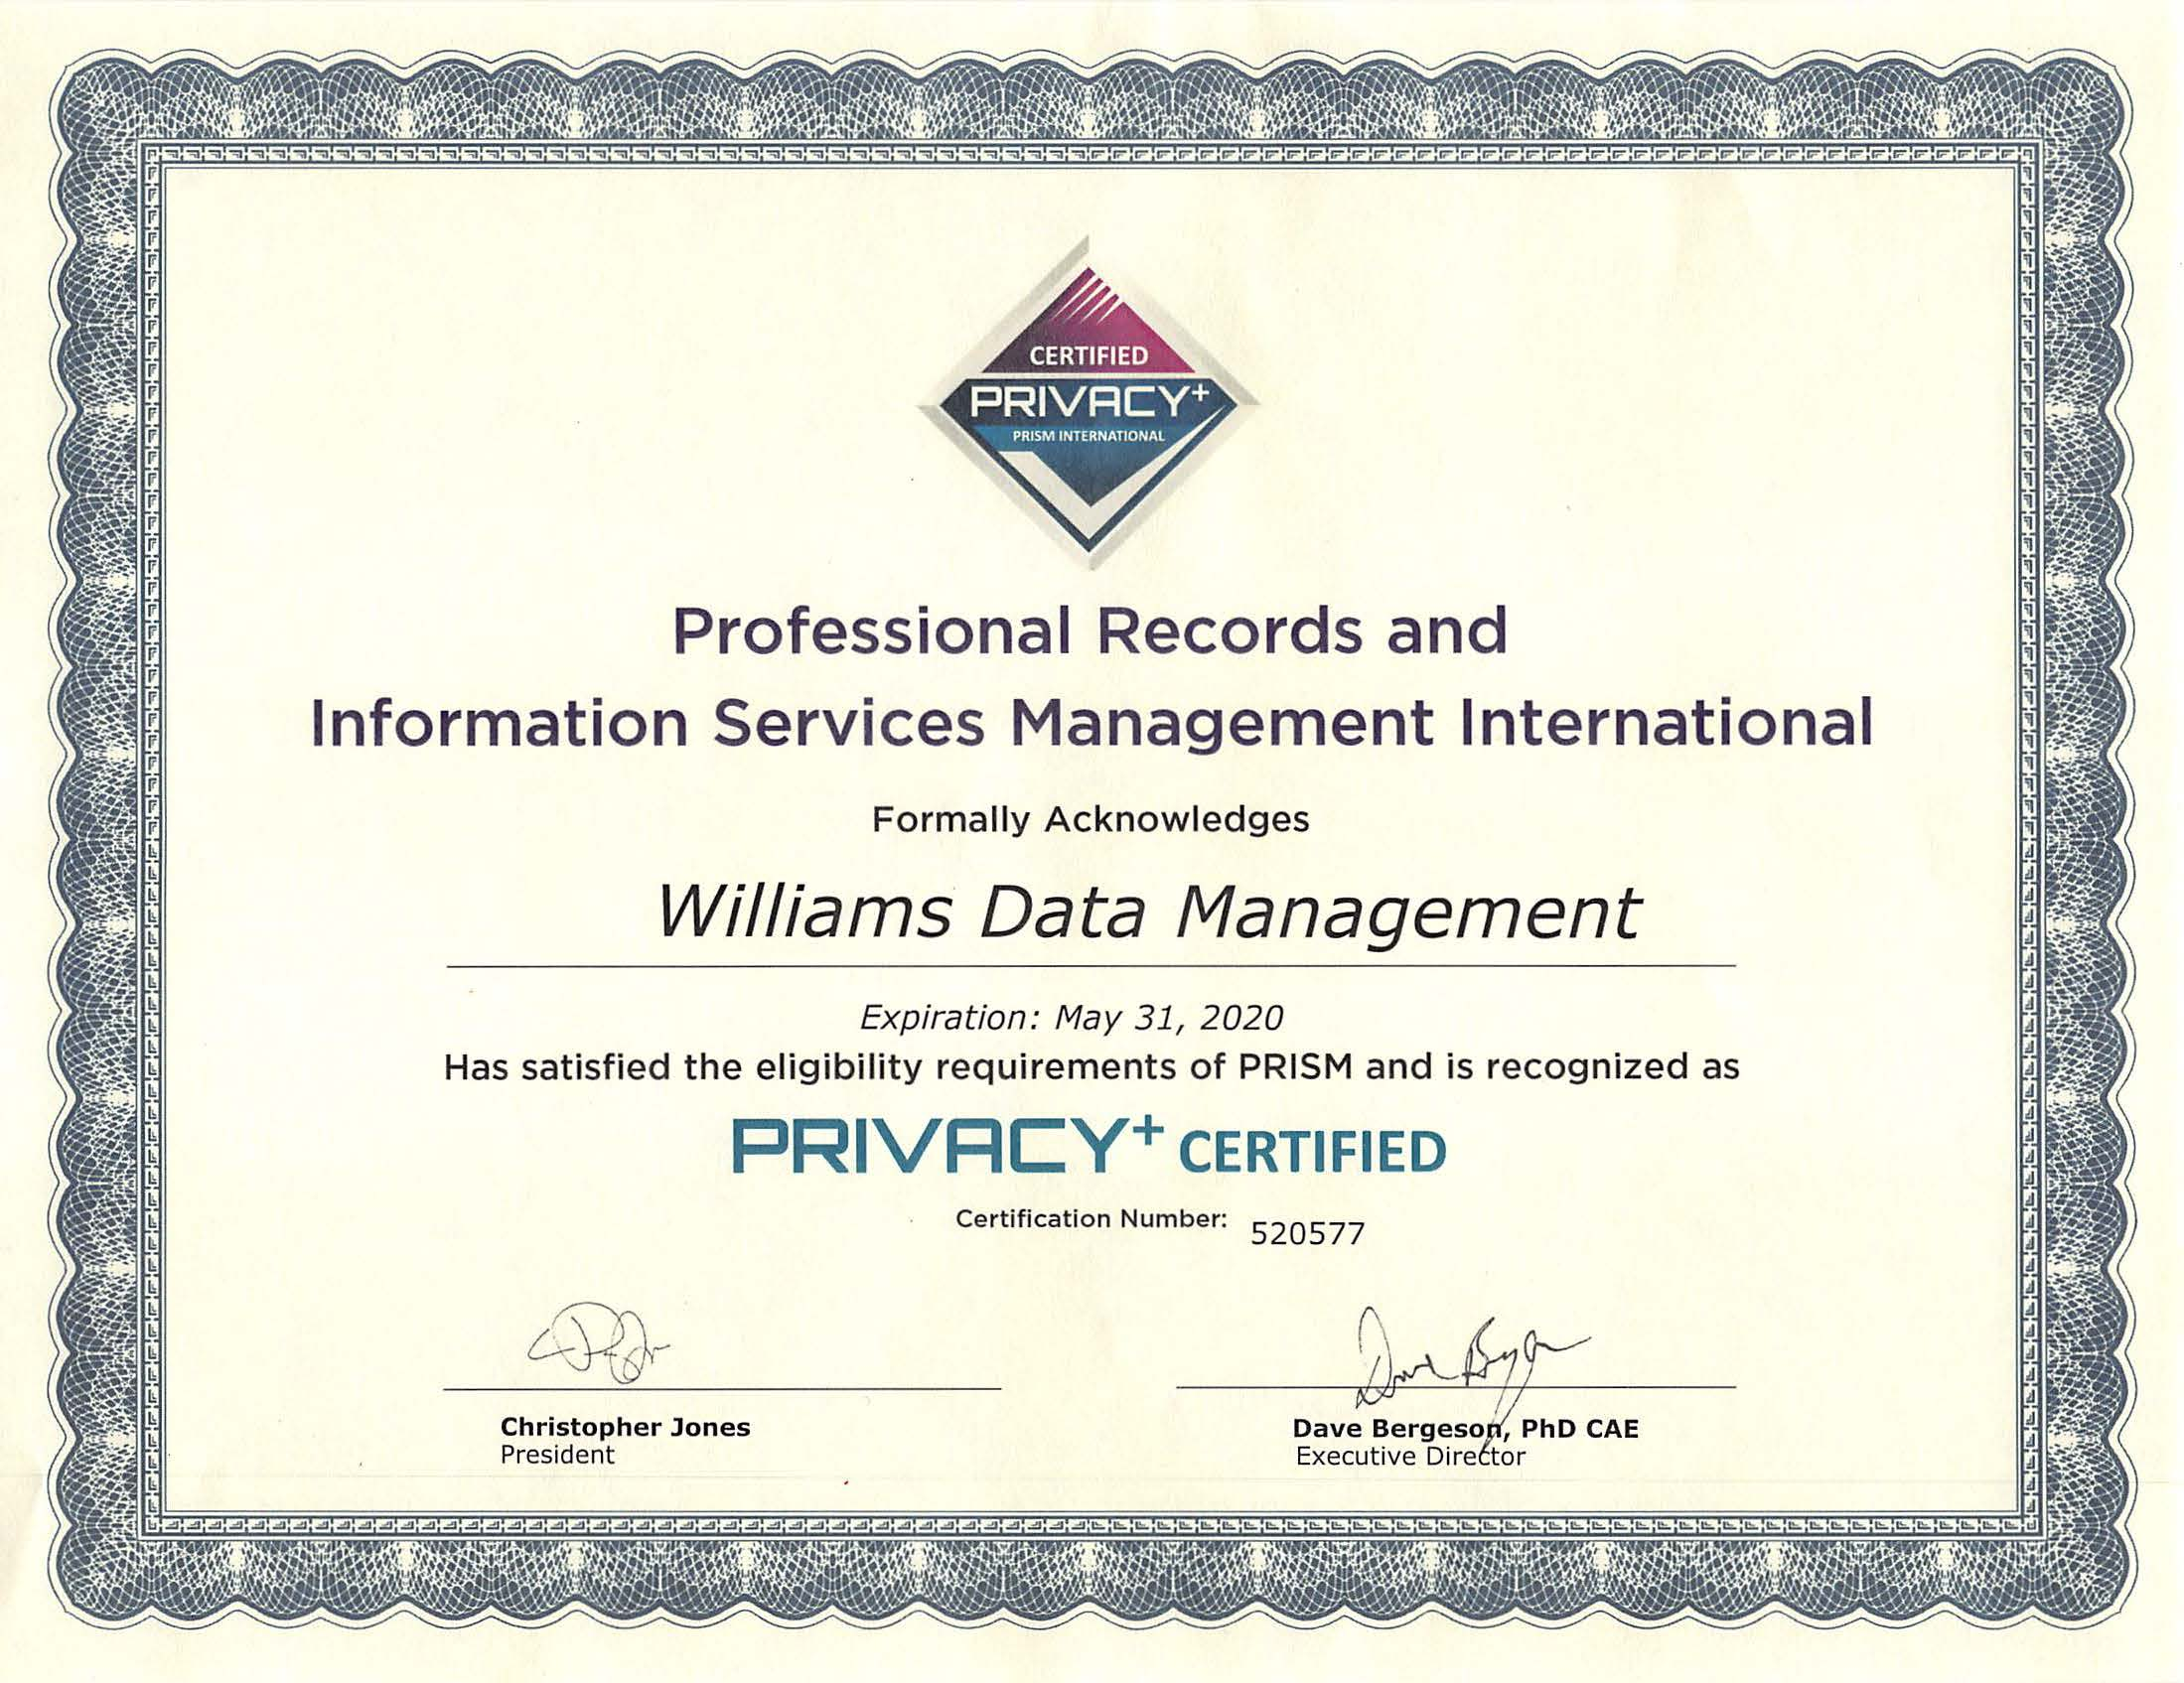 PRISM Privacy+ Certification